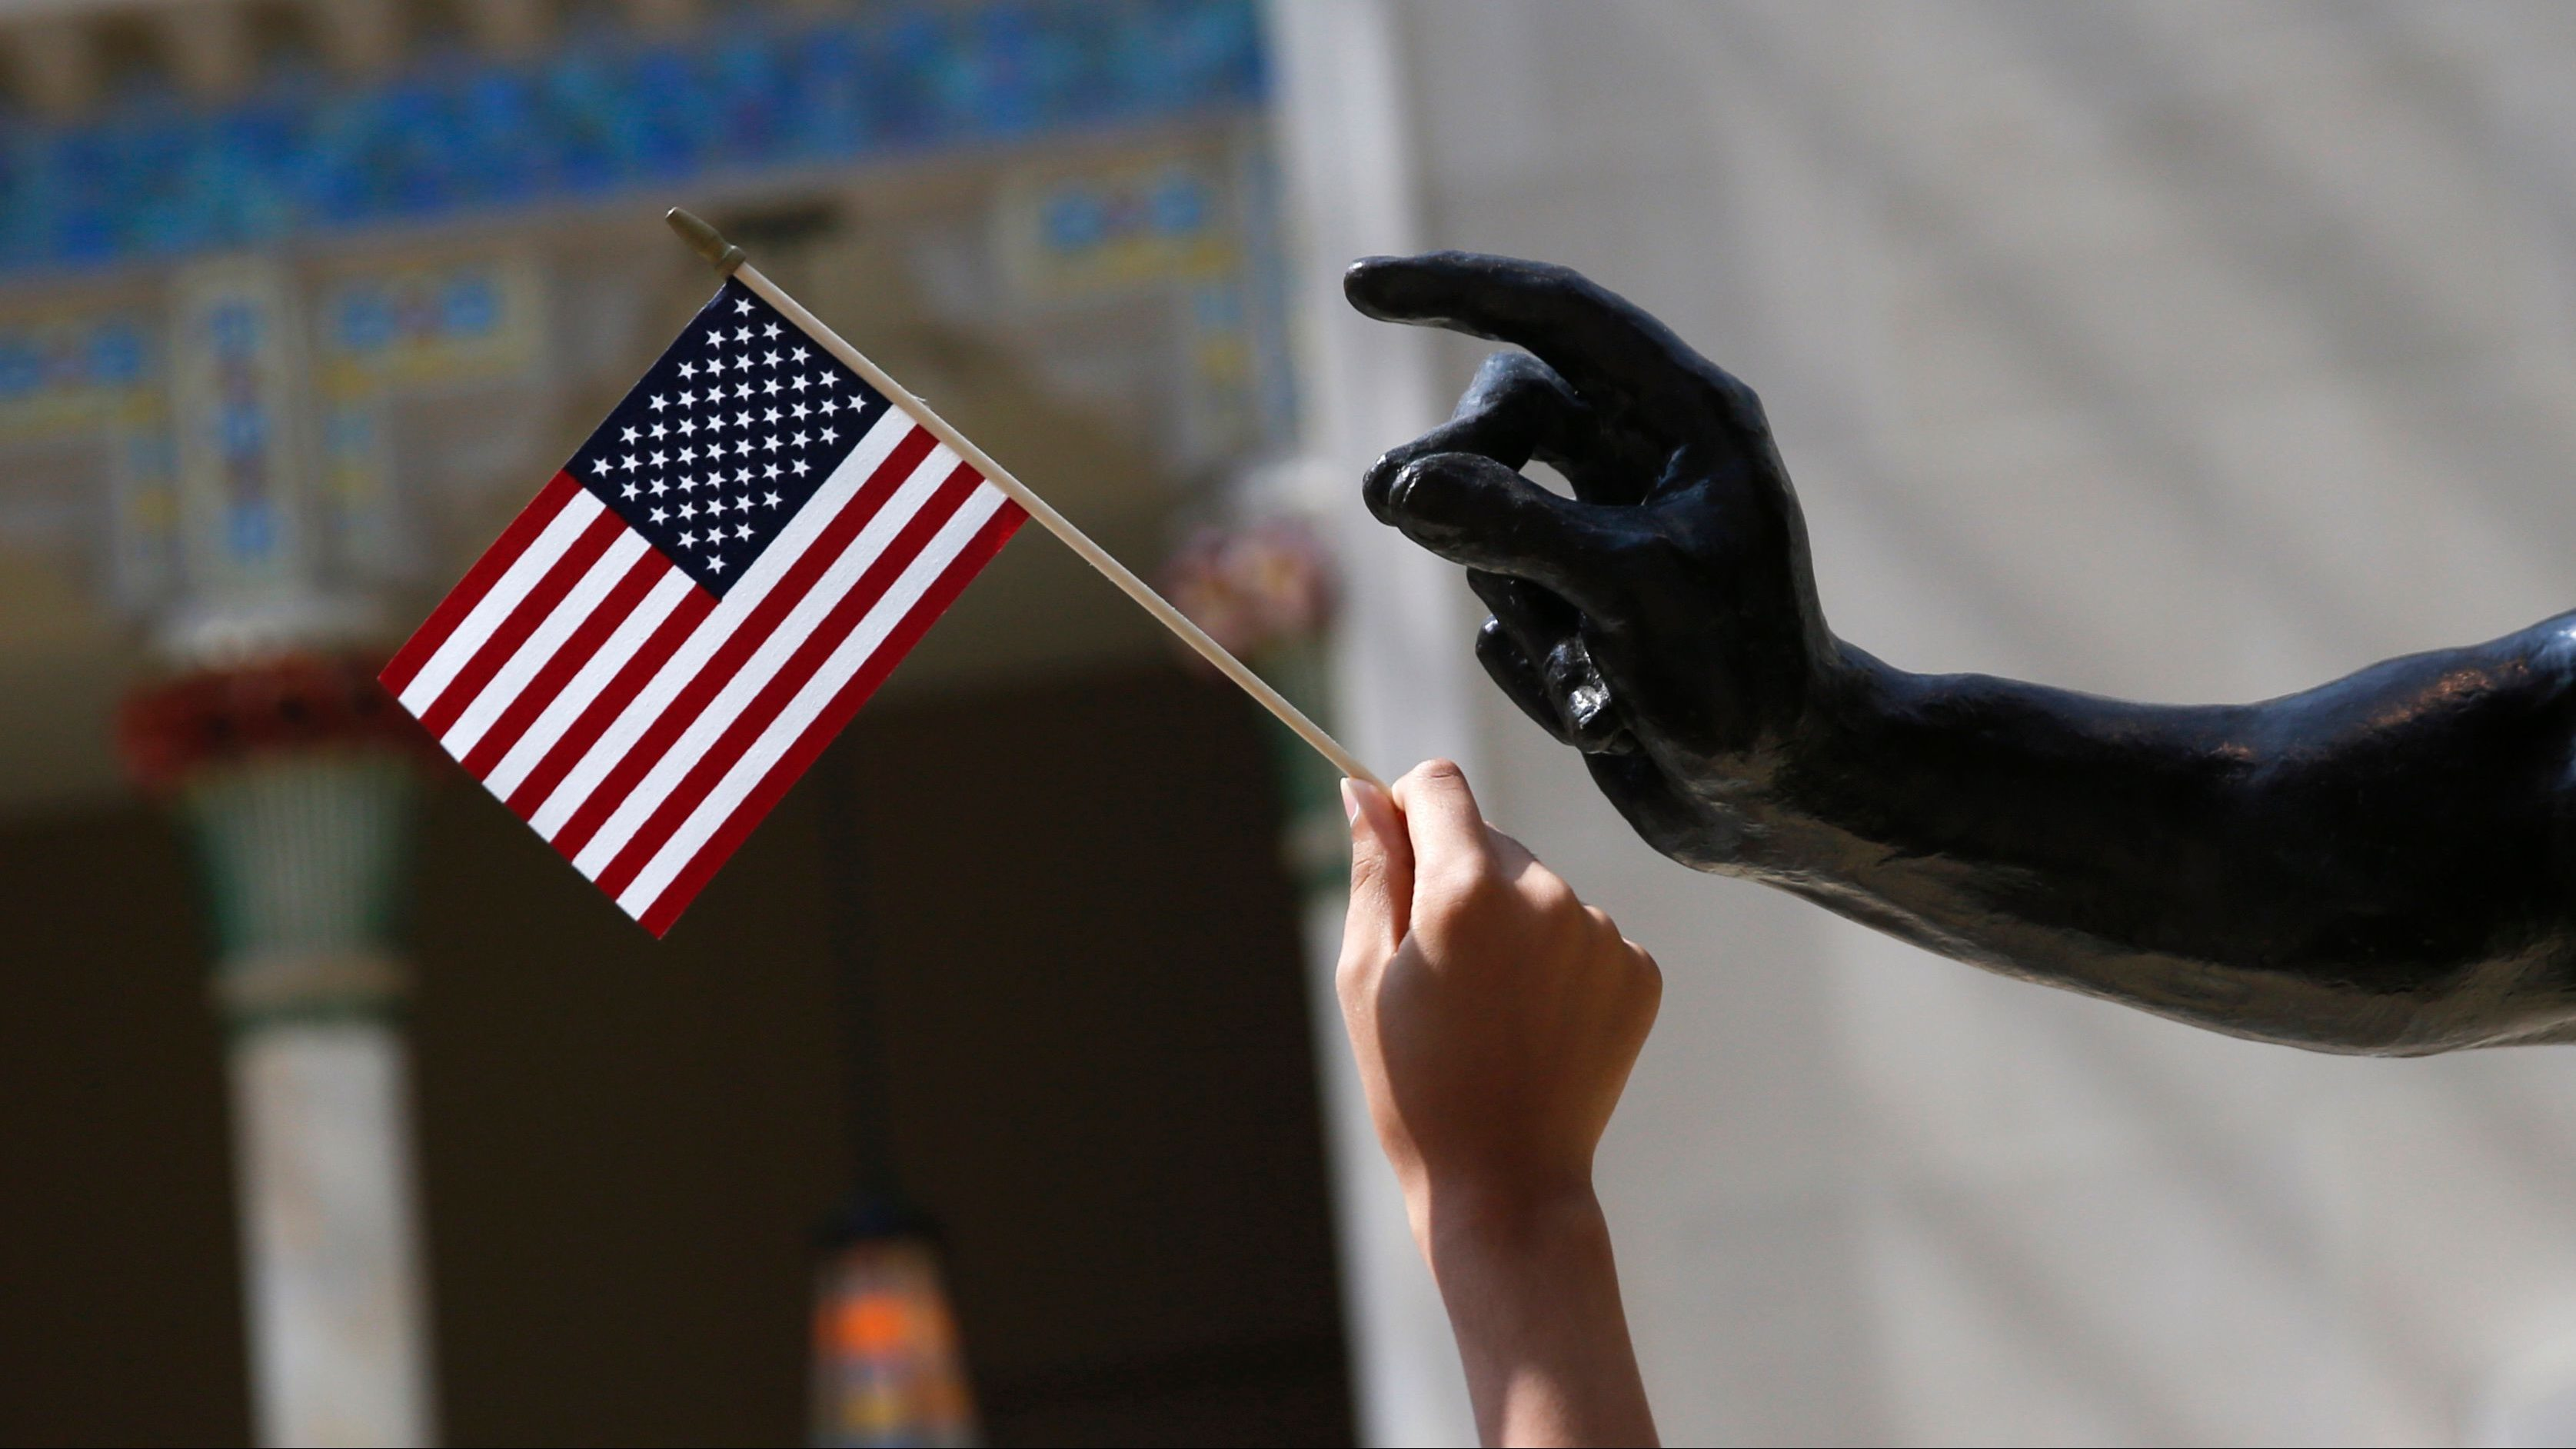 A girl holds a U.S. flag next to a sculpture after a naturalization ceremony at The Metropolitan Museum of Art in New York July 22, 2014. Seventy-five people from 42 countries became American citizens at an event held by U.S. Citizenship and Immigration Services (USCIS) at the Museum. REUTERS/Shannon Stapleton (UNITED STATES  - Tags: SOCIETY POLITICS IMMIGRATION) - GM1EA7N03K501